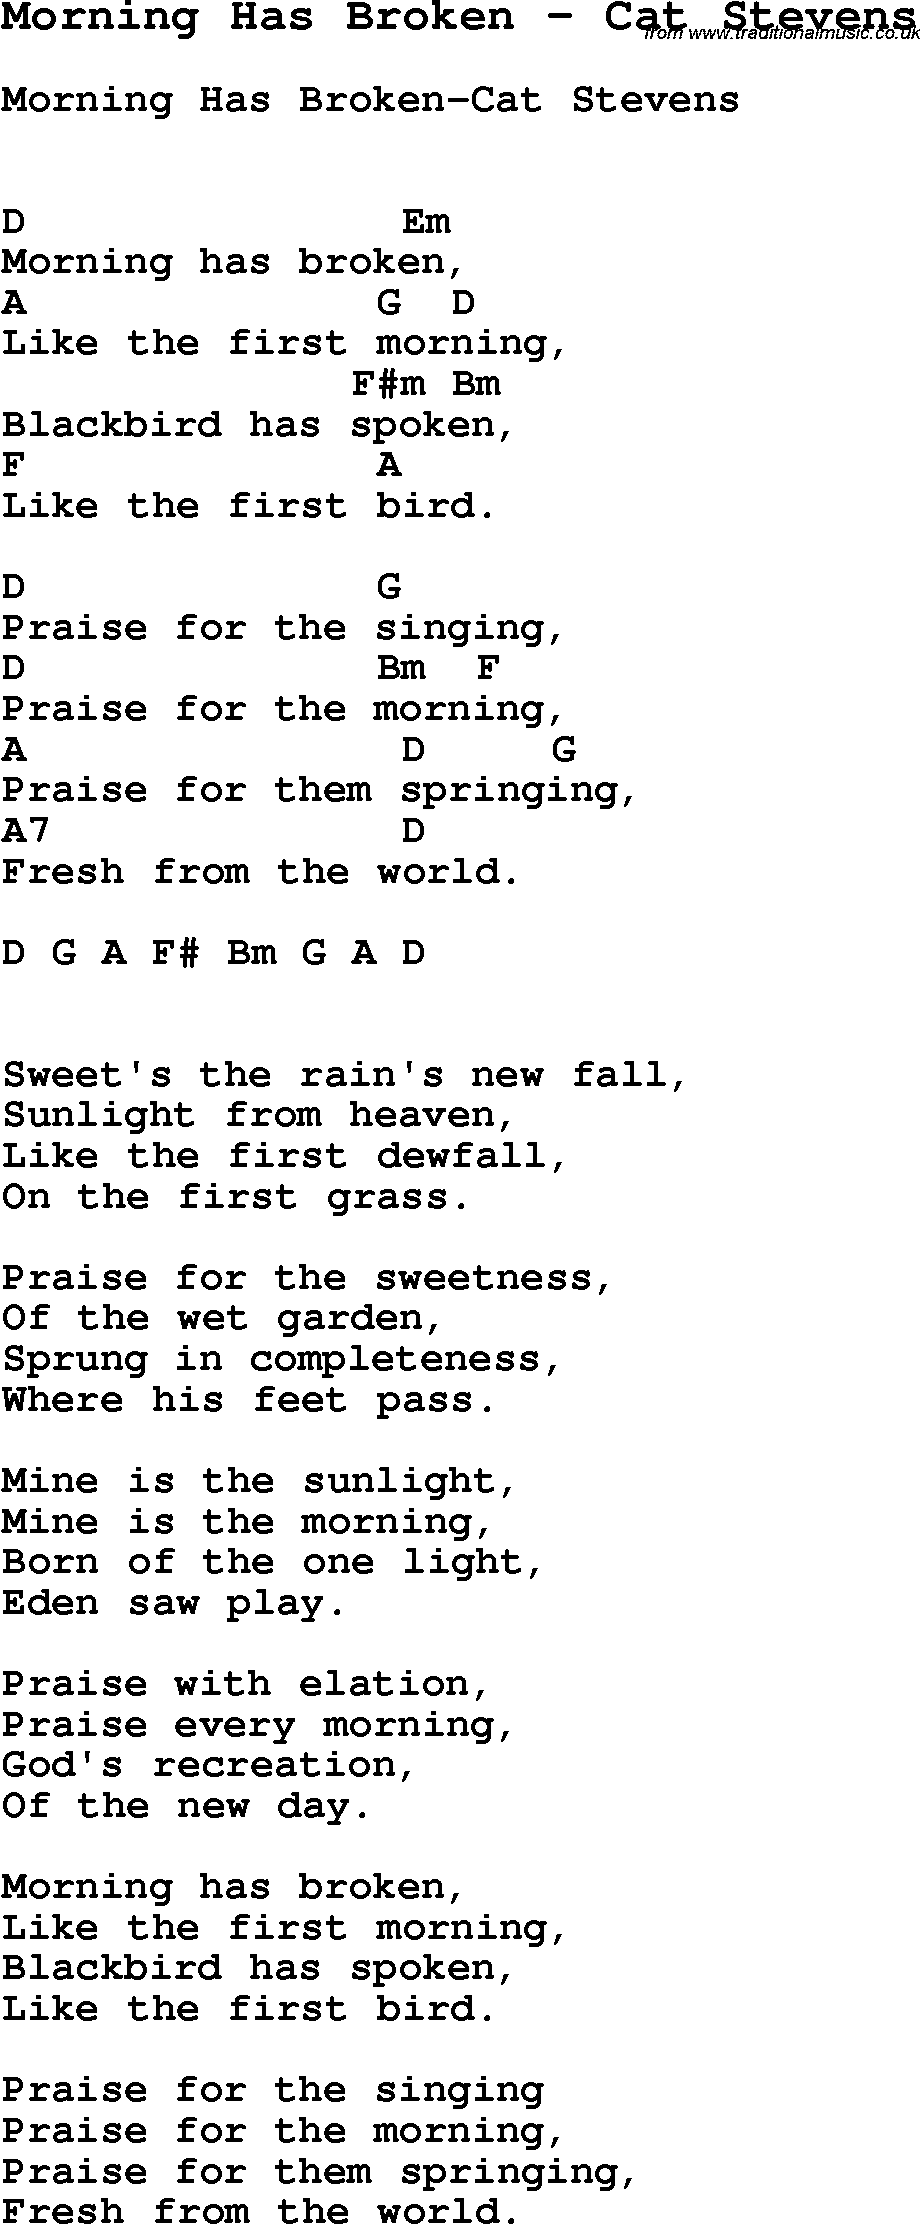 Song Morning Has Broken By Cat Stevens With Lyrics For Vocal